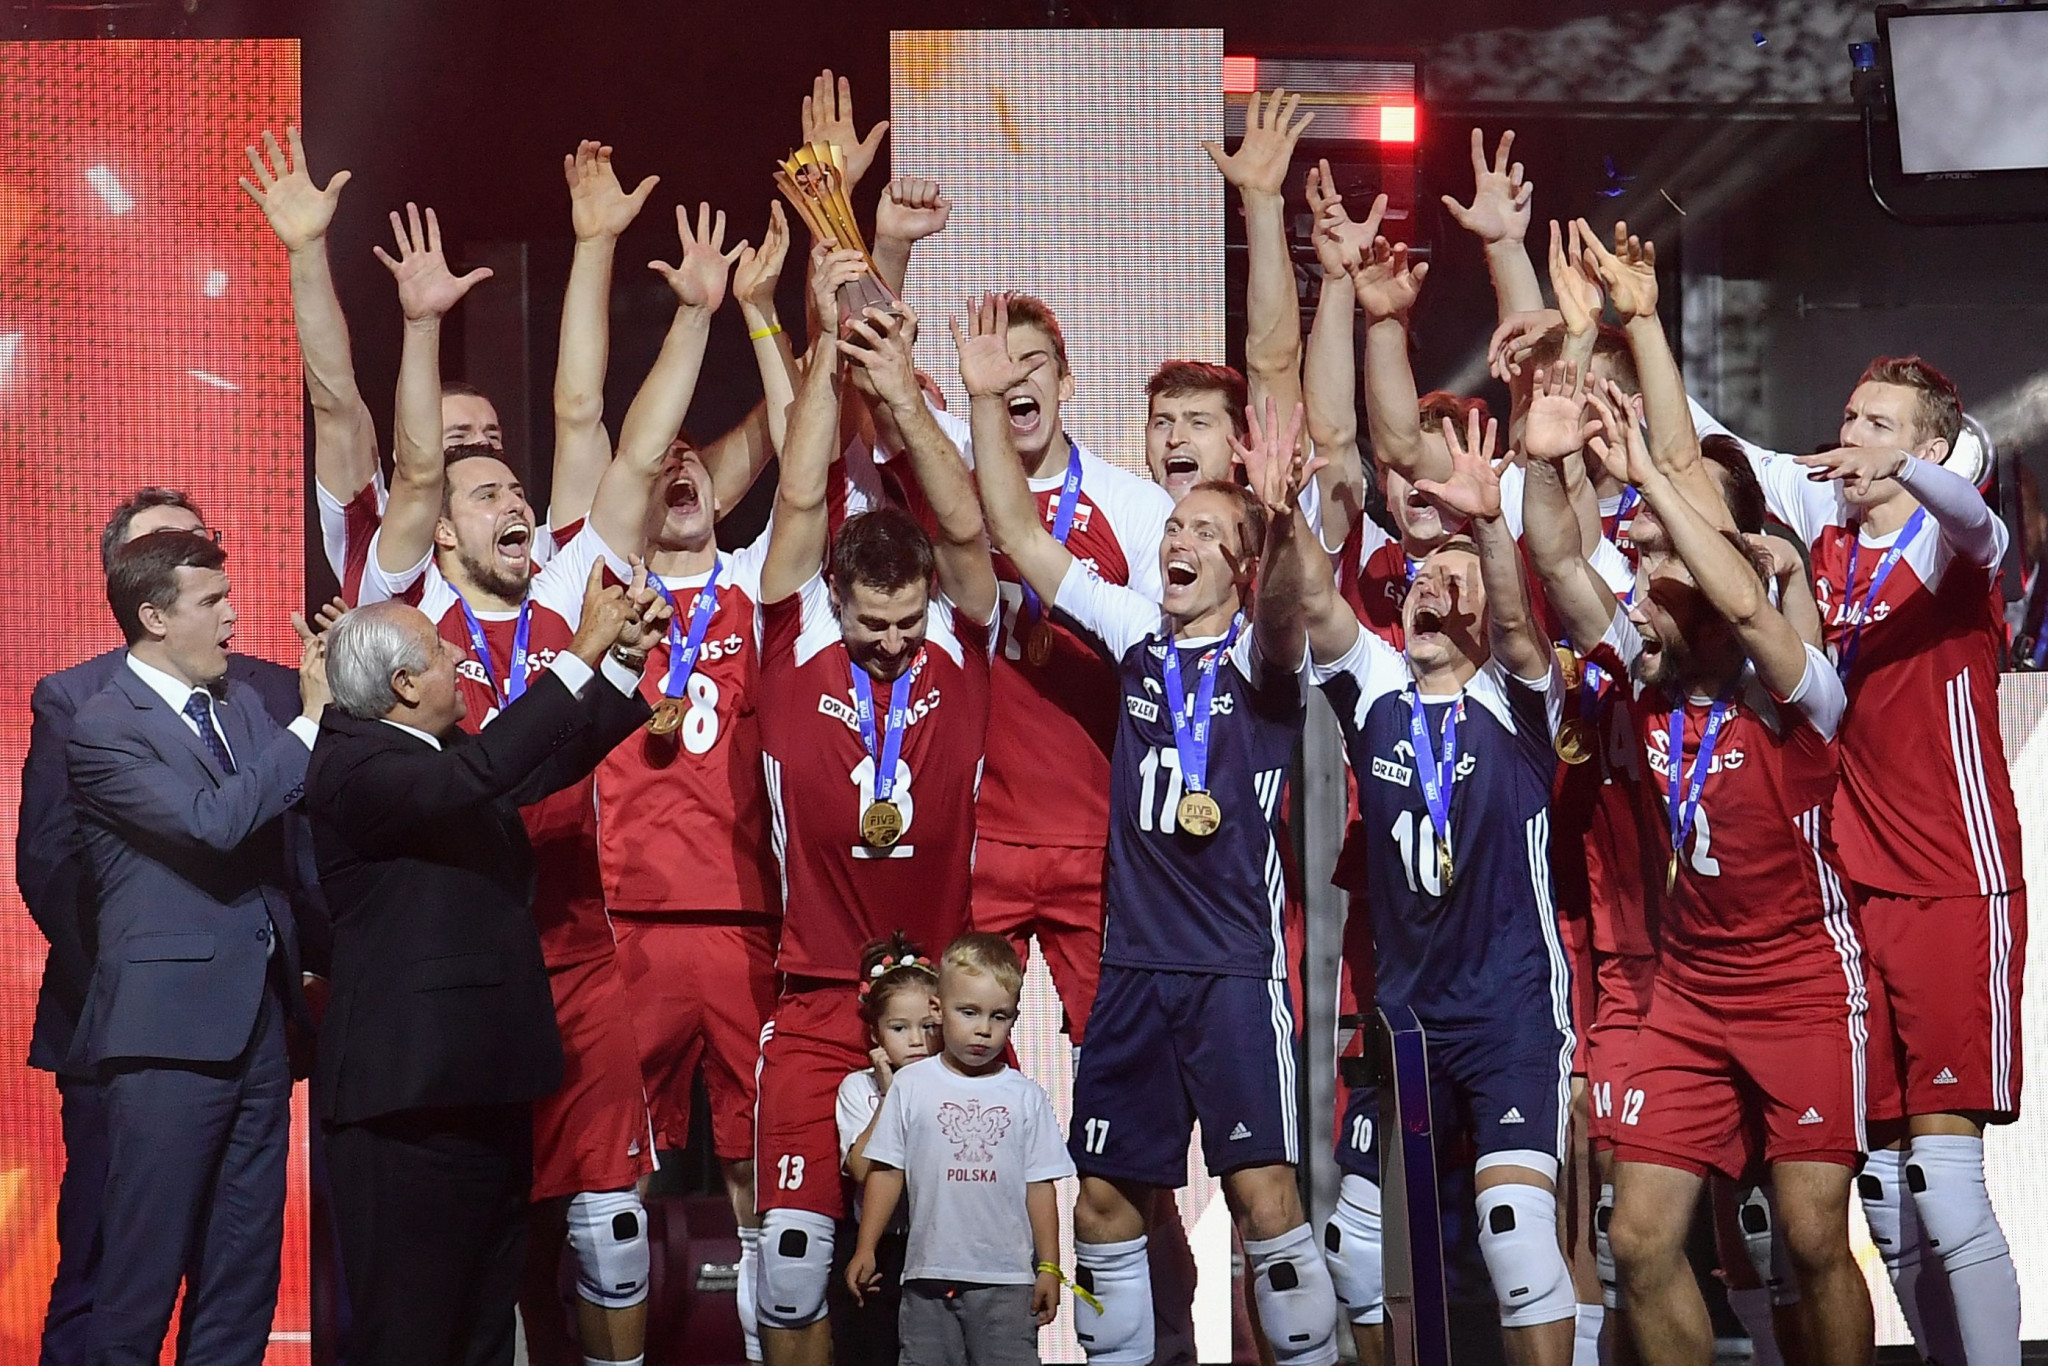 Defending champions Poland to face US in FIVB Men's World Championship pool